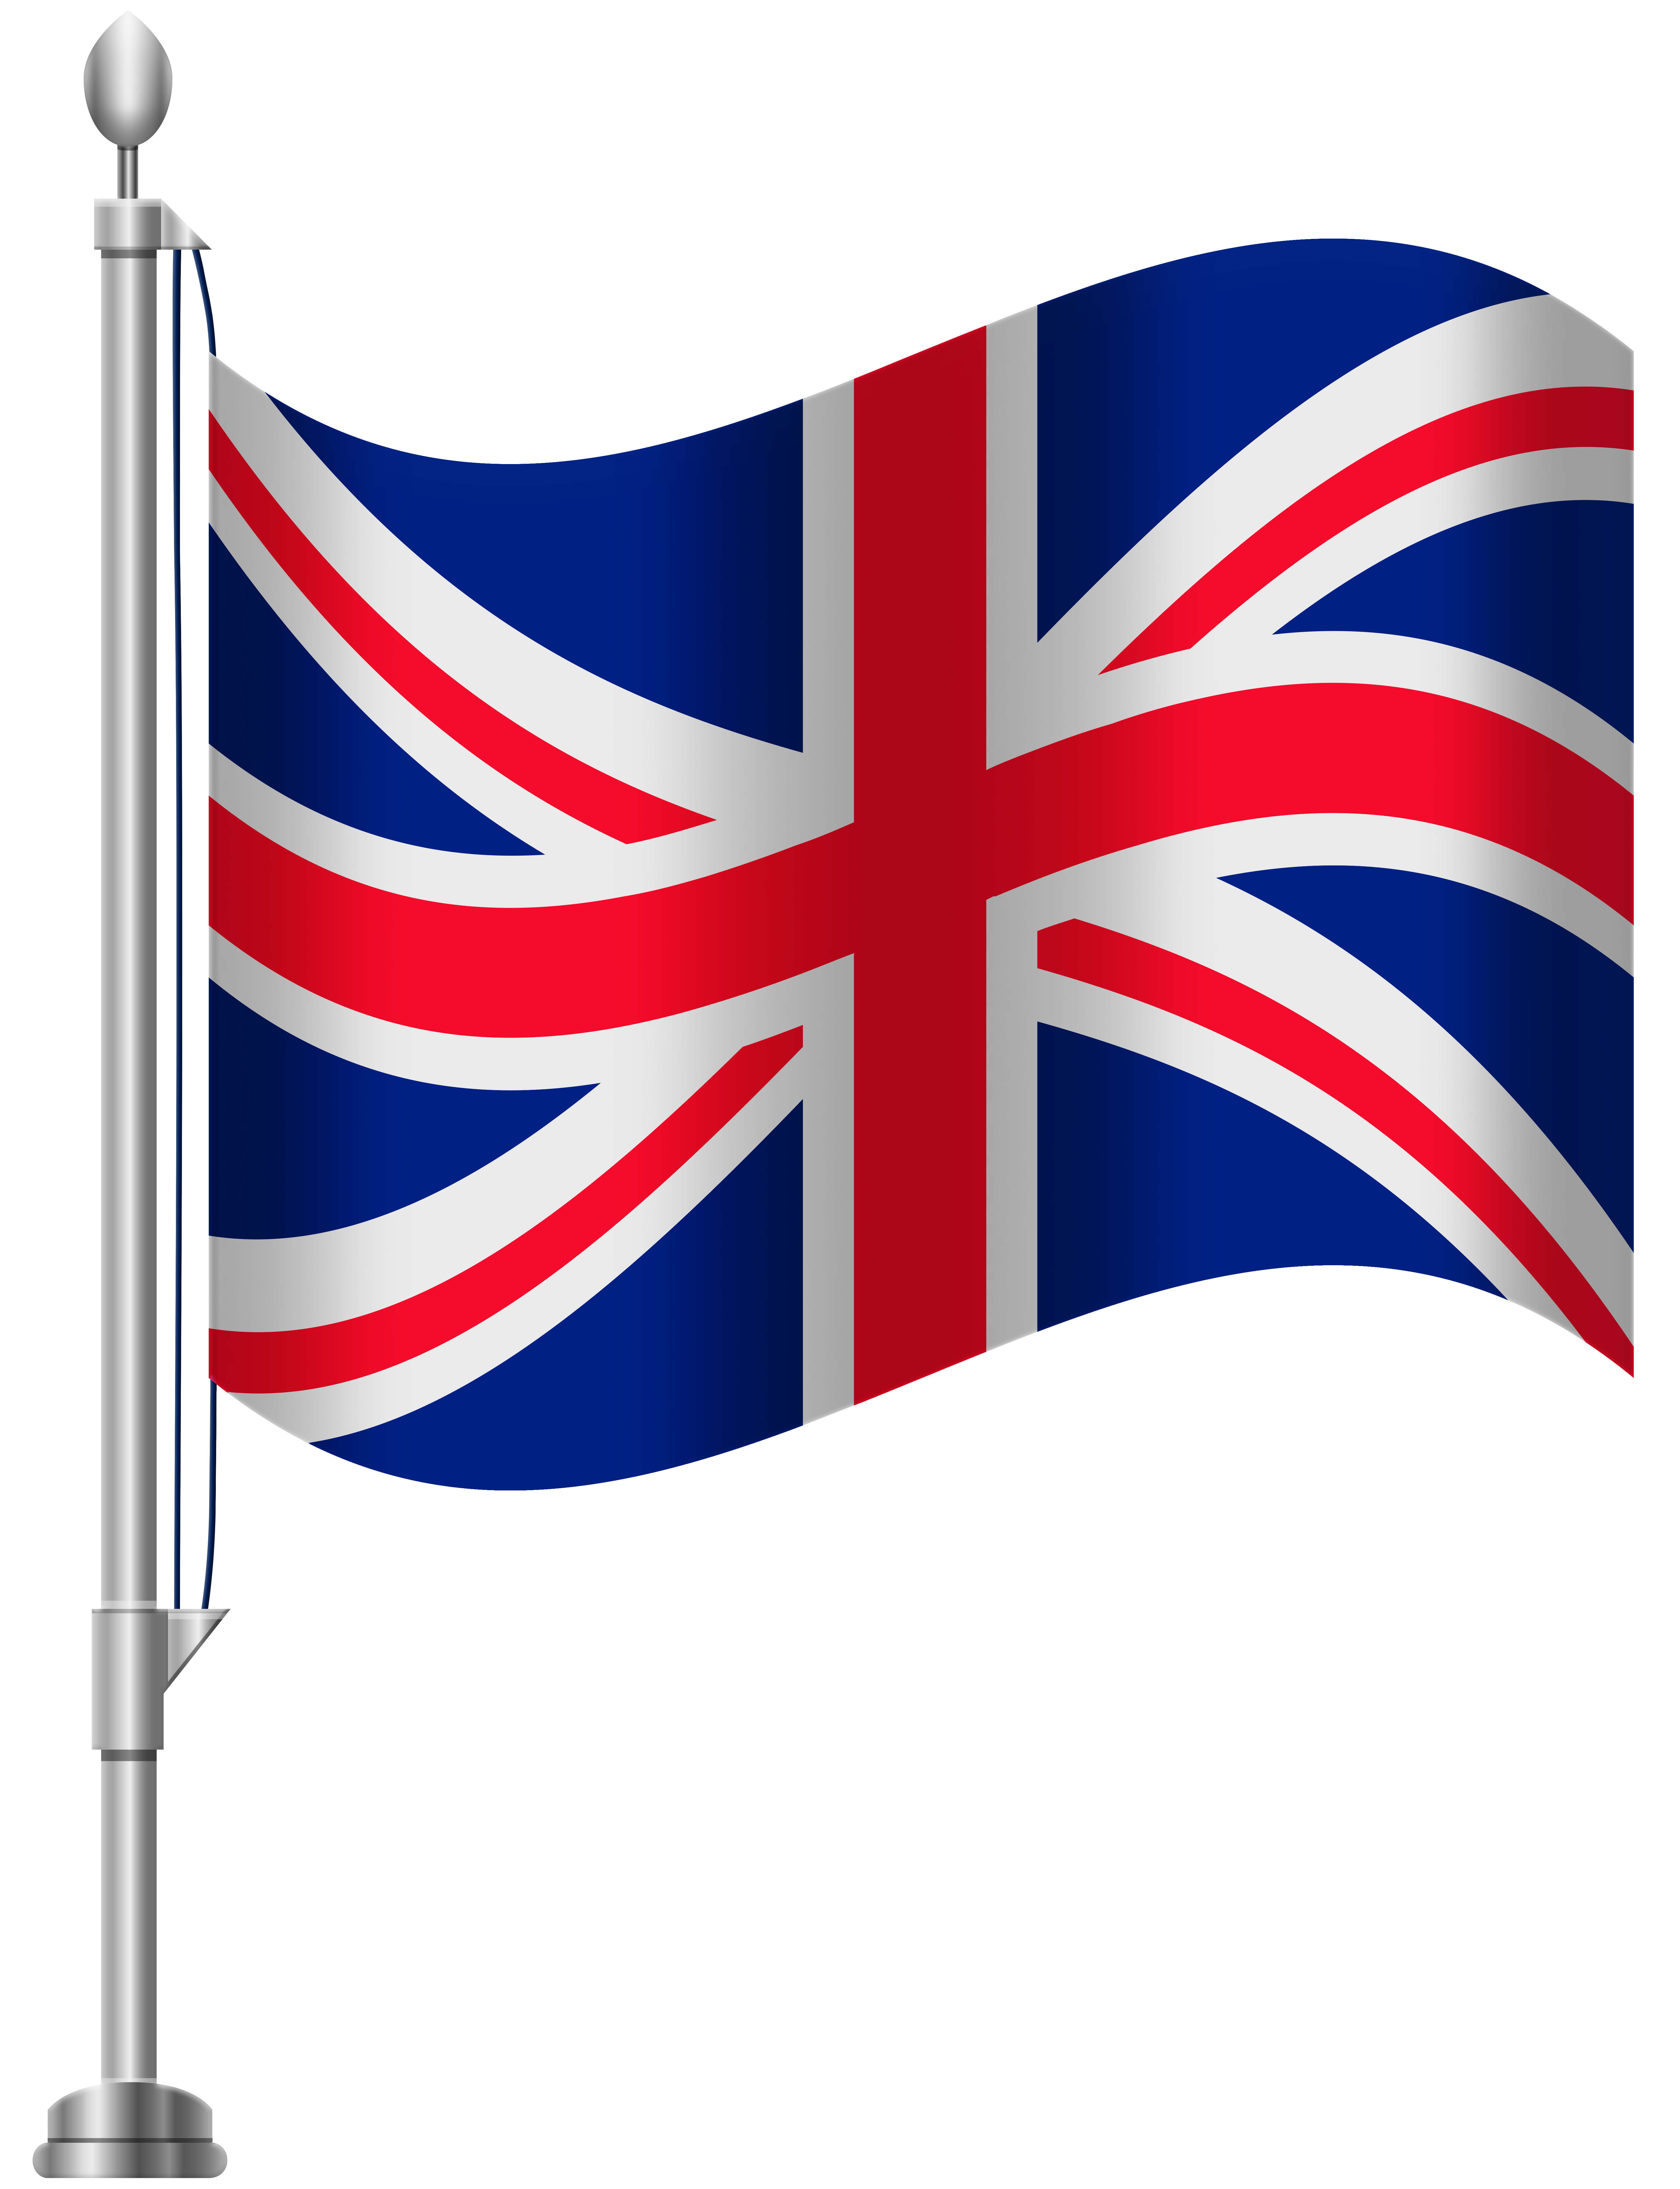 United Kingdom clipart #6, Download drawings